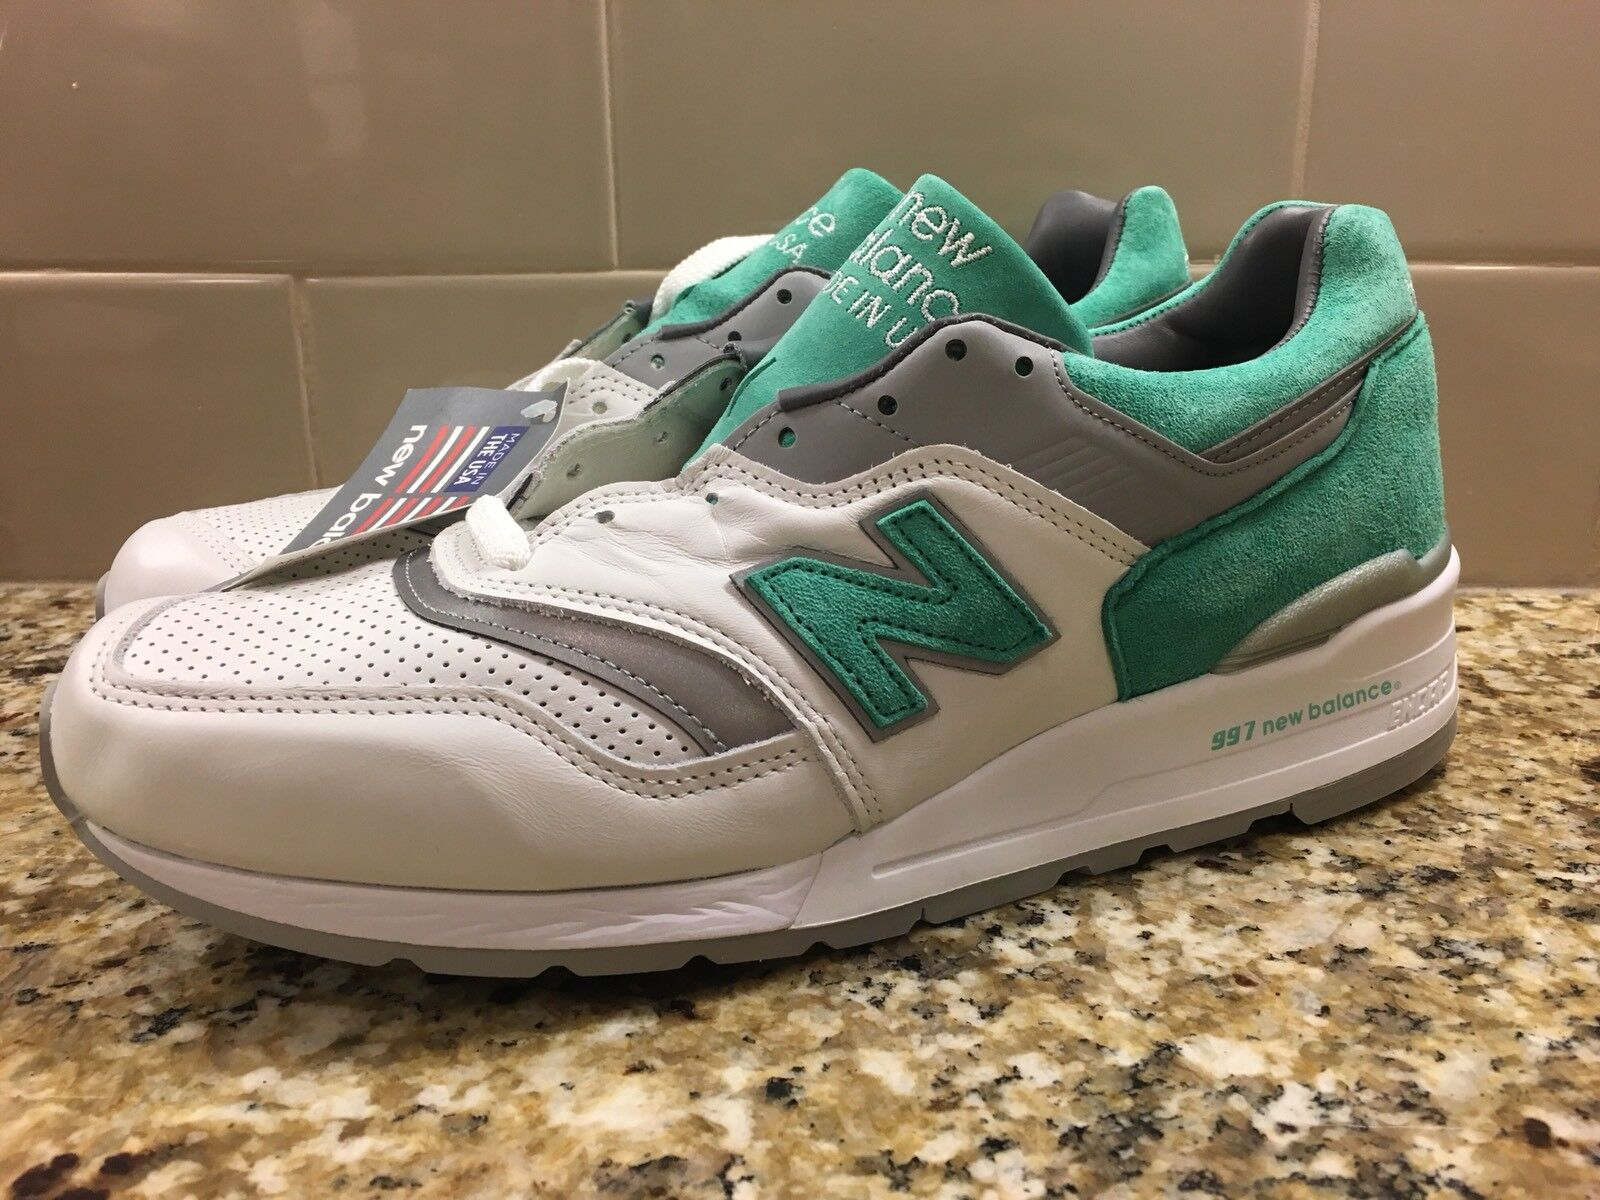 New Balance 997 M997CMA Size 13 Made In The USA White Mint Green Fieg Concepts